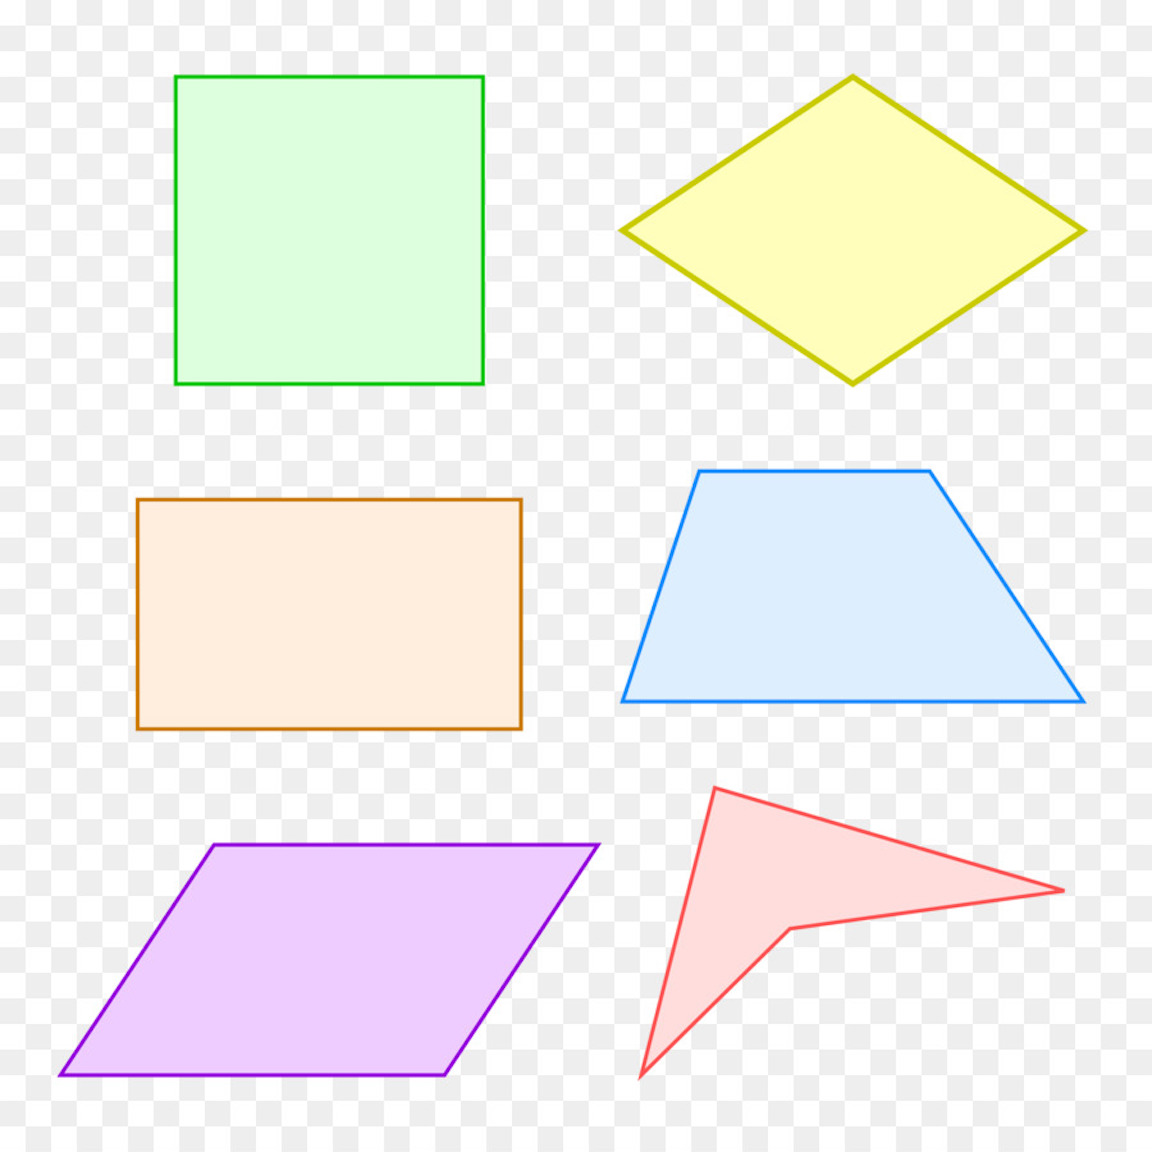 Quadrilateral Shapes Coloring And Other Free Printable